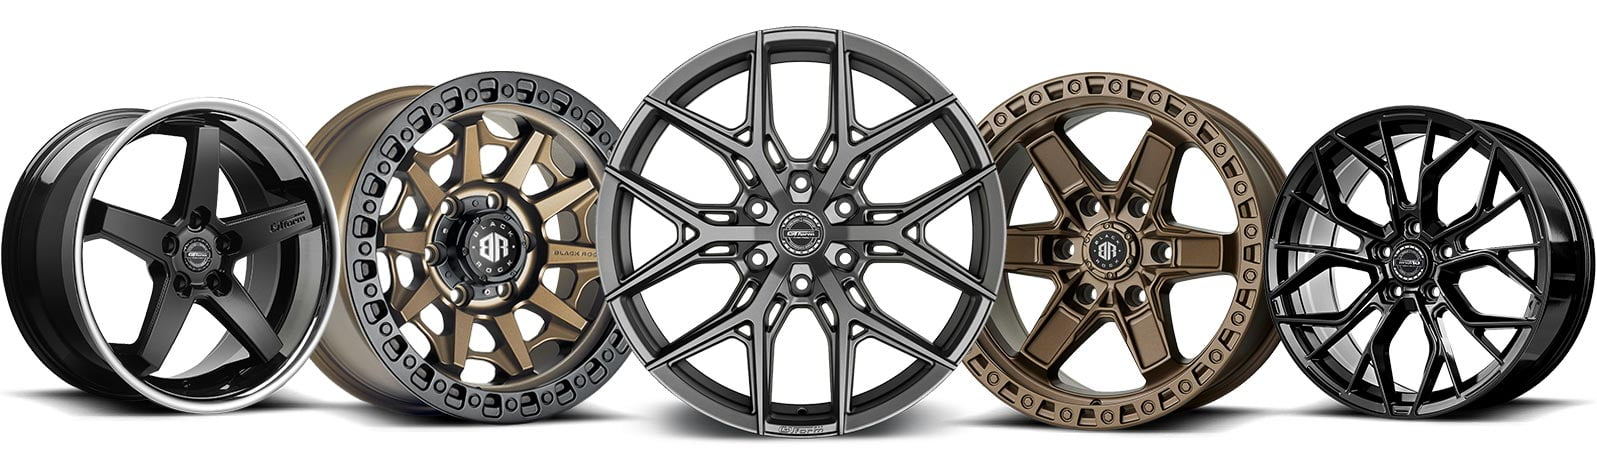 wheel and tyre packages 4x4 rims